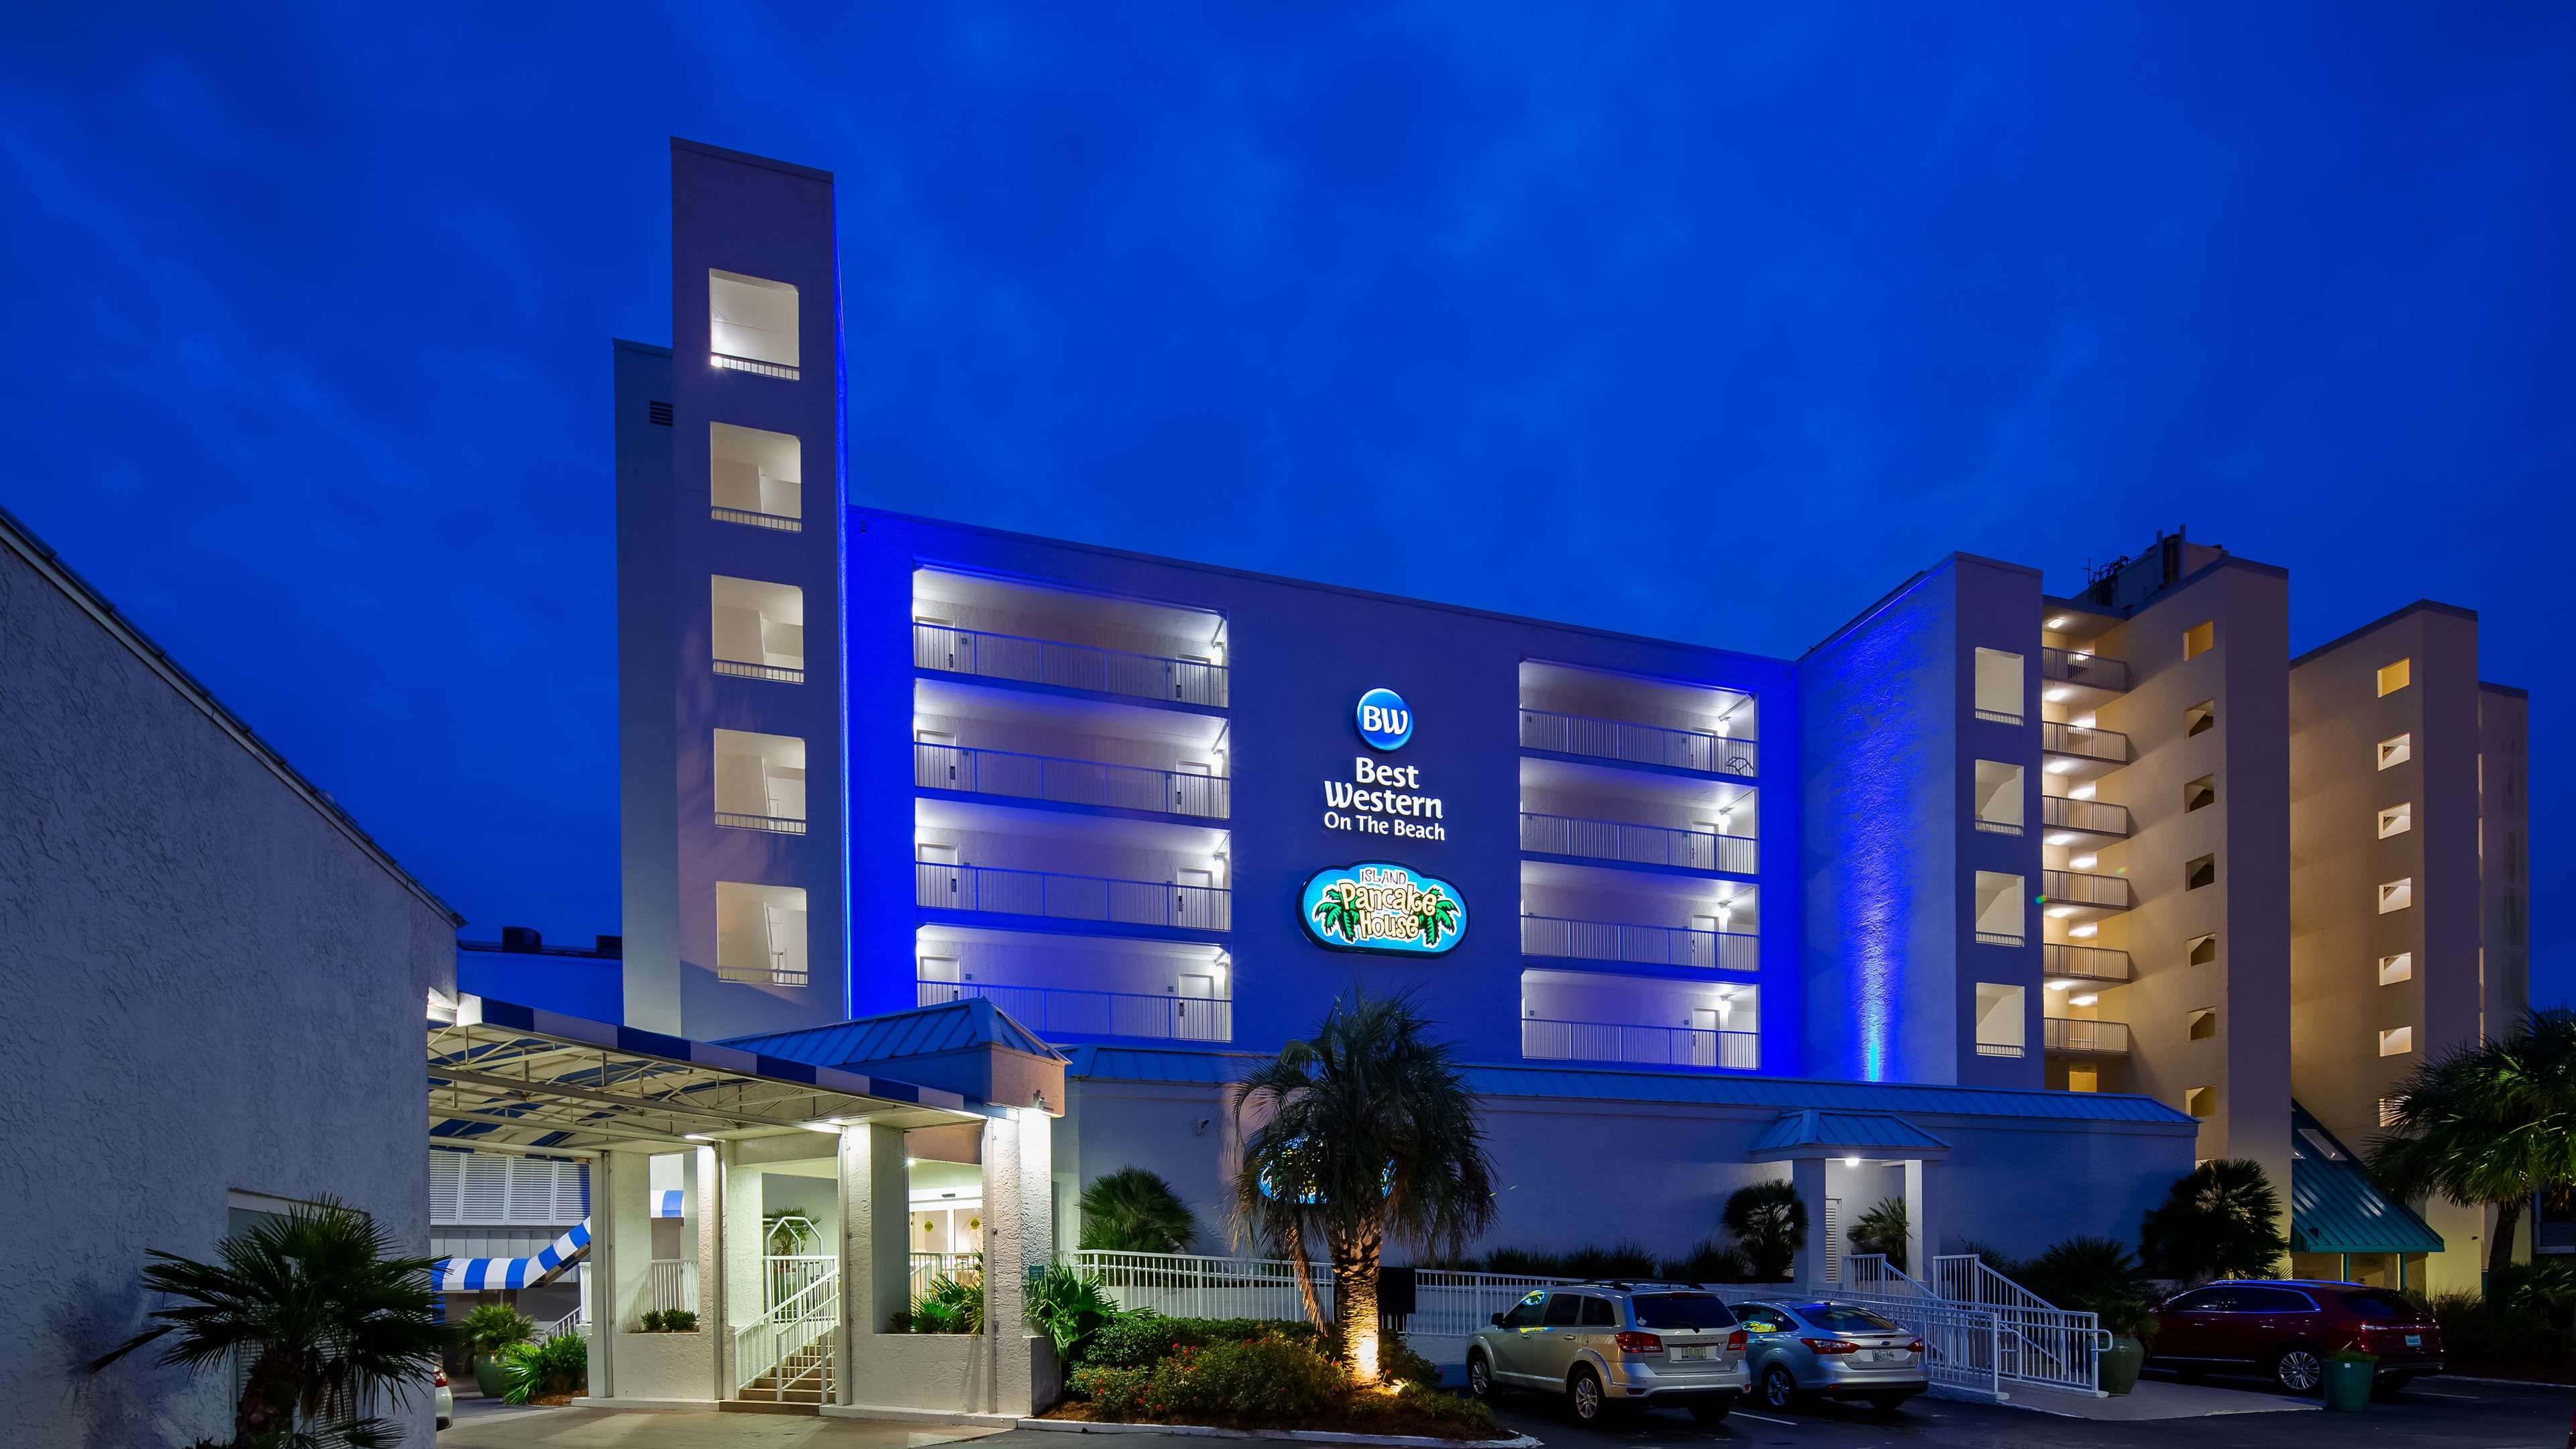 Best Western on the Beach image 1